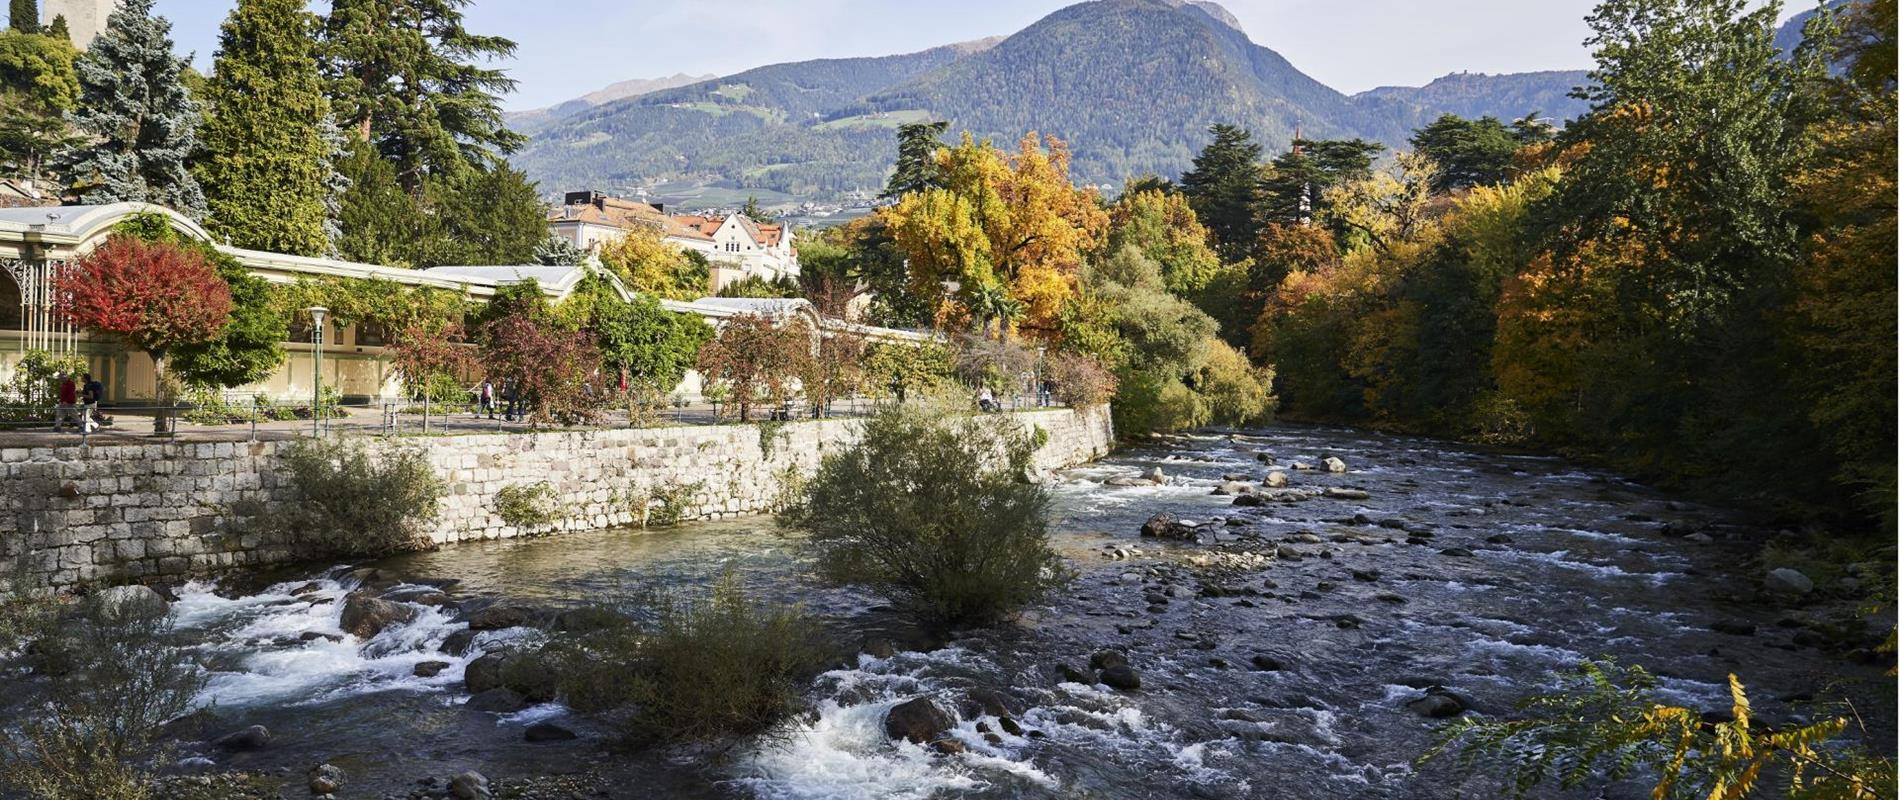 Autumn in Meran